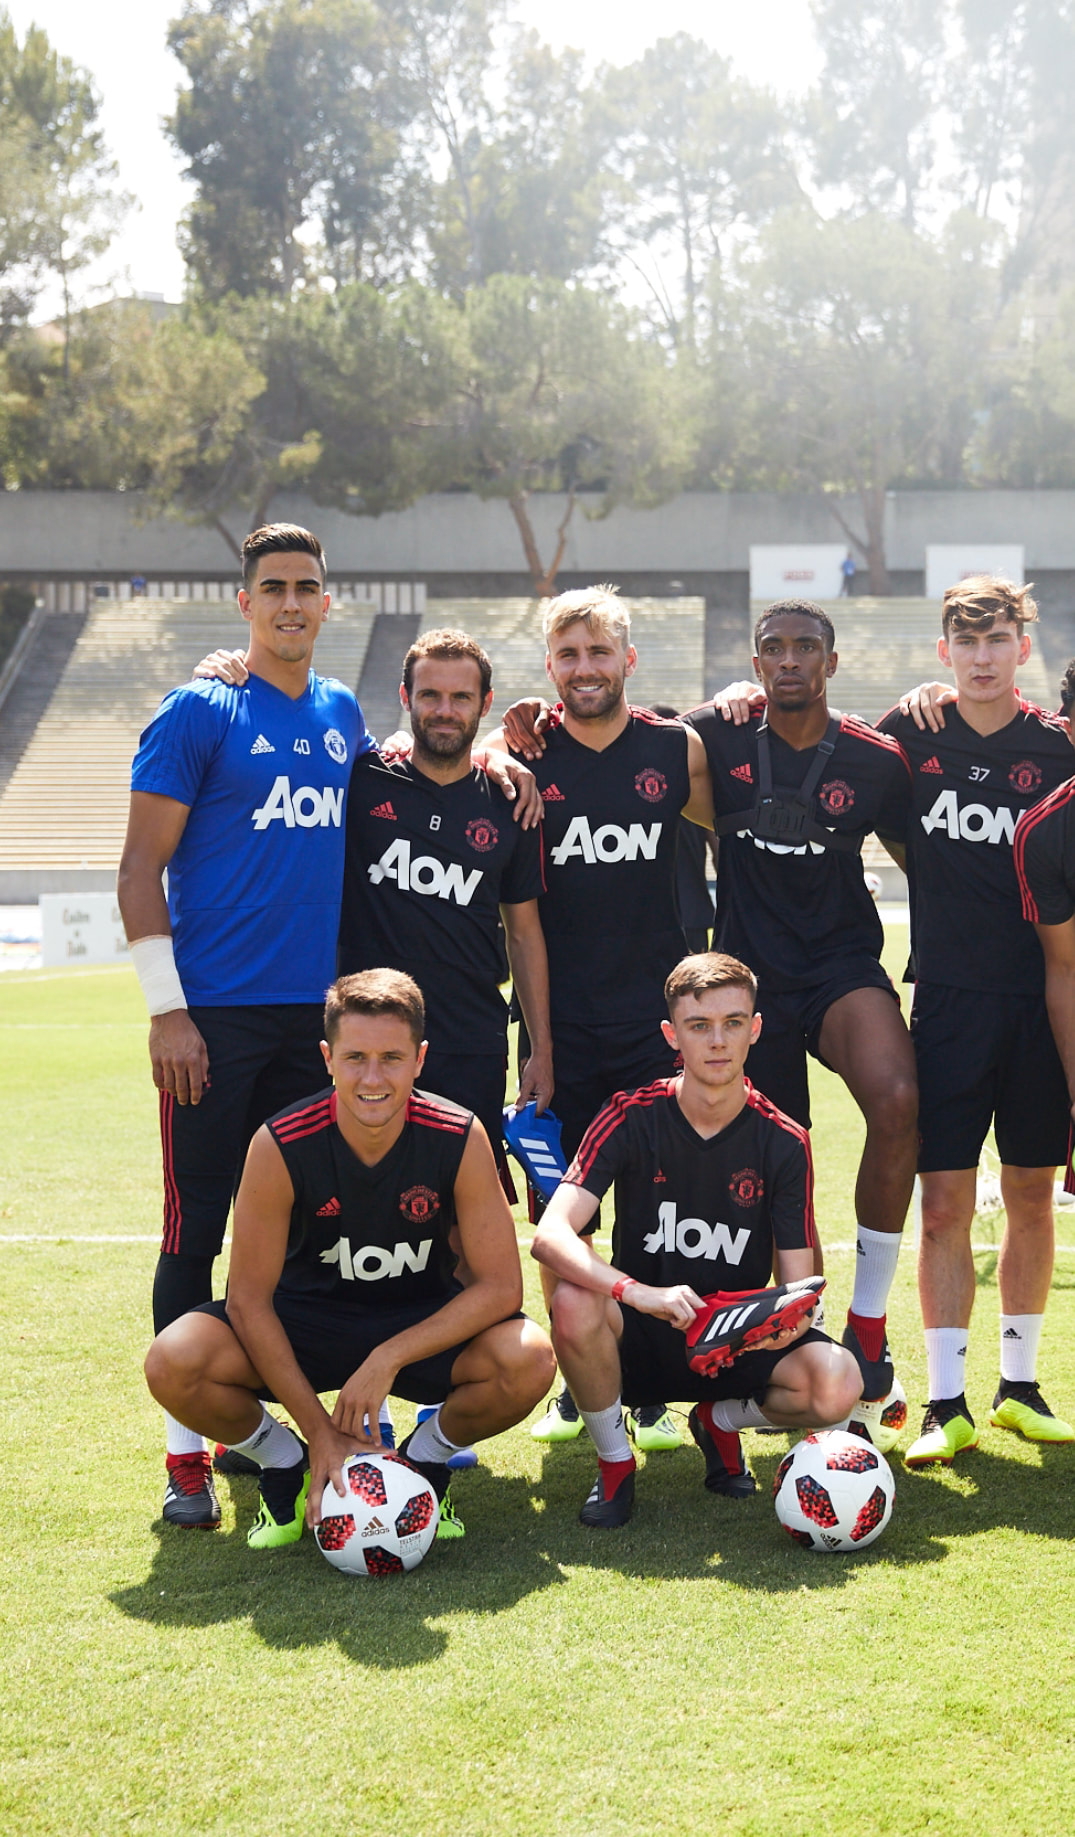 Picture TNFreestyle / Tom Nolan training with Manchester United in LA